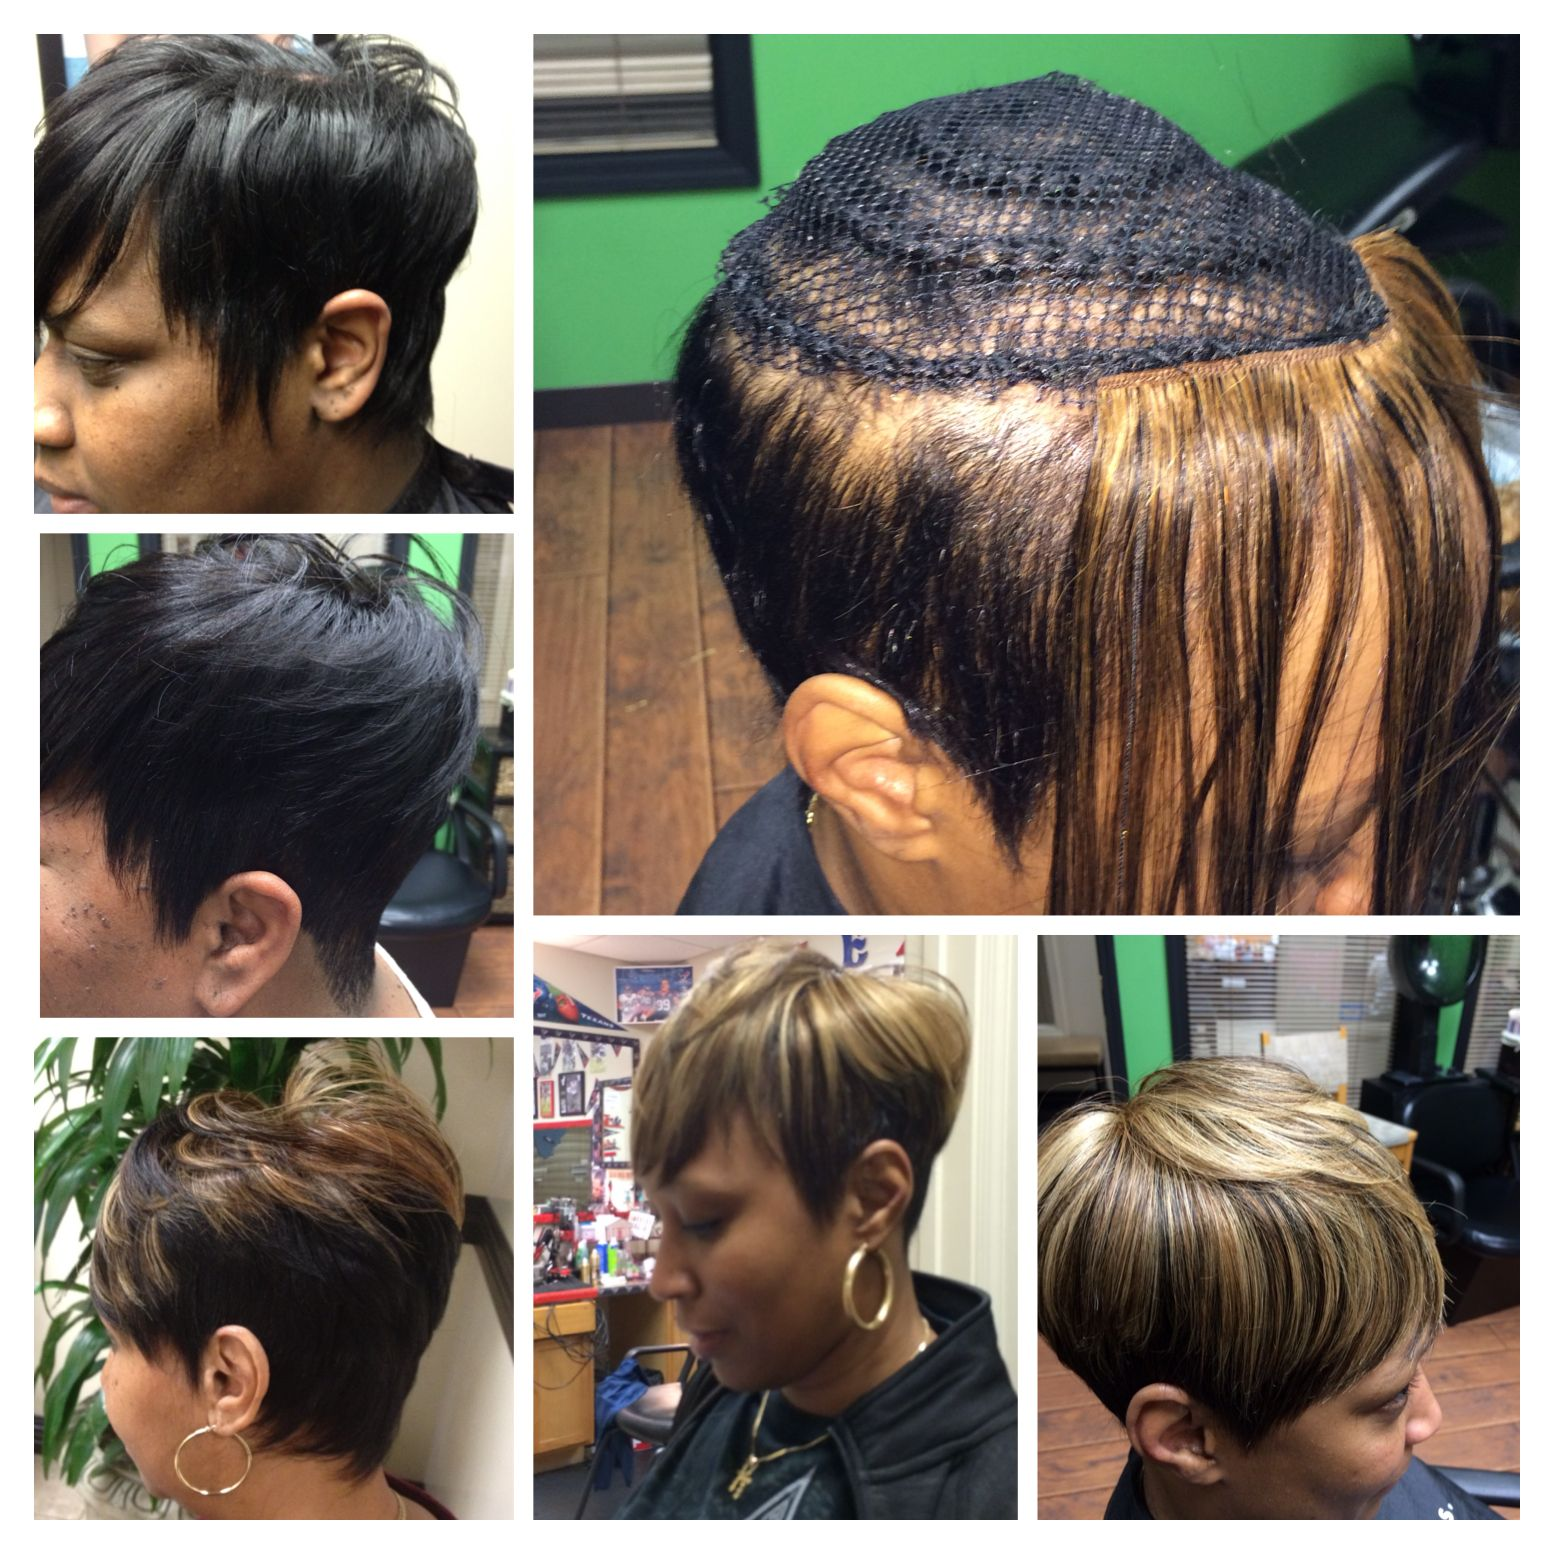 shorthair inspired by summer. short crop sew-ins, no glue used in